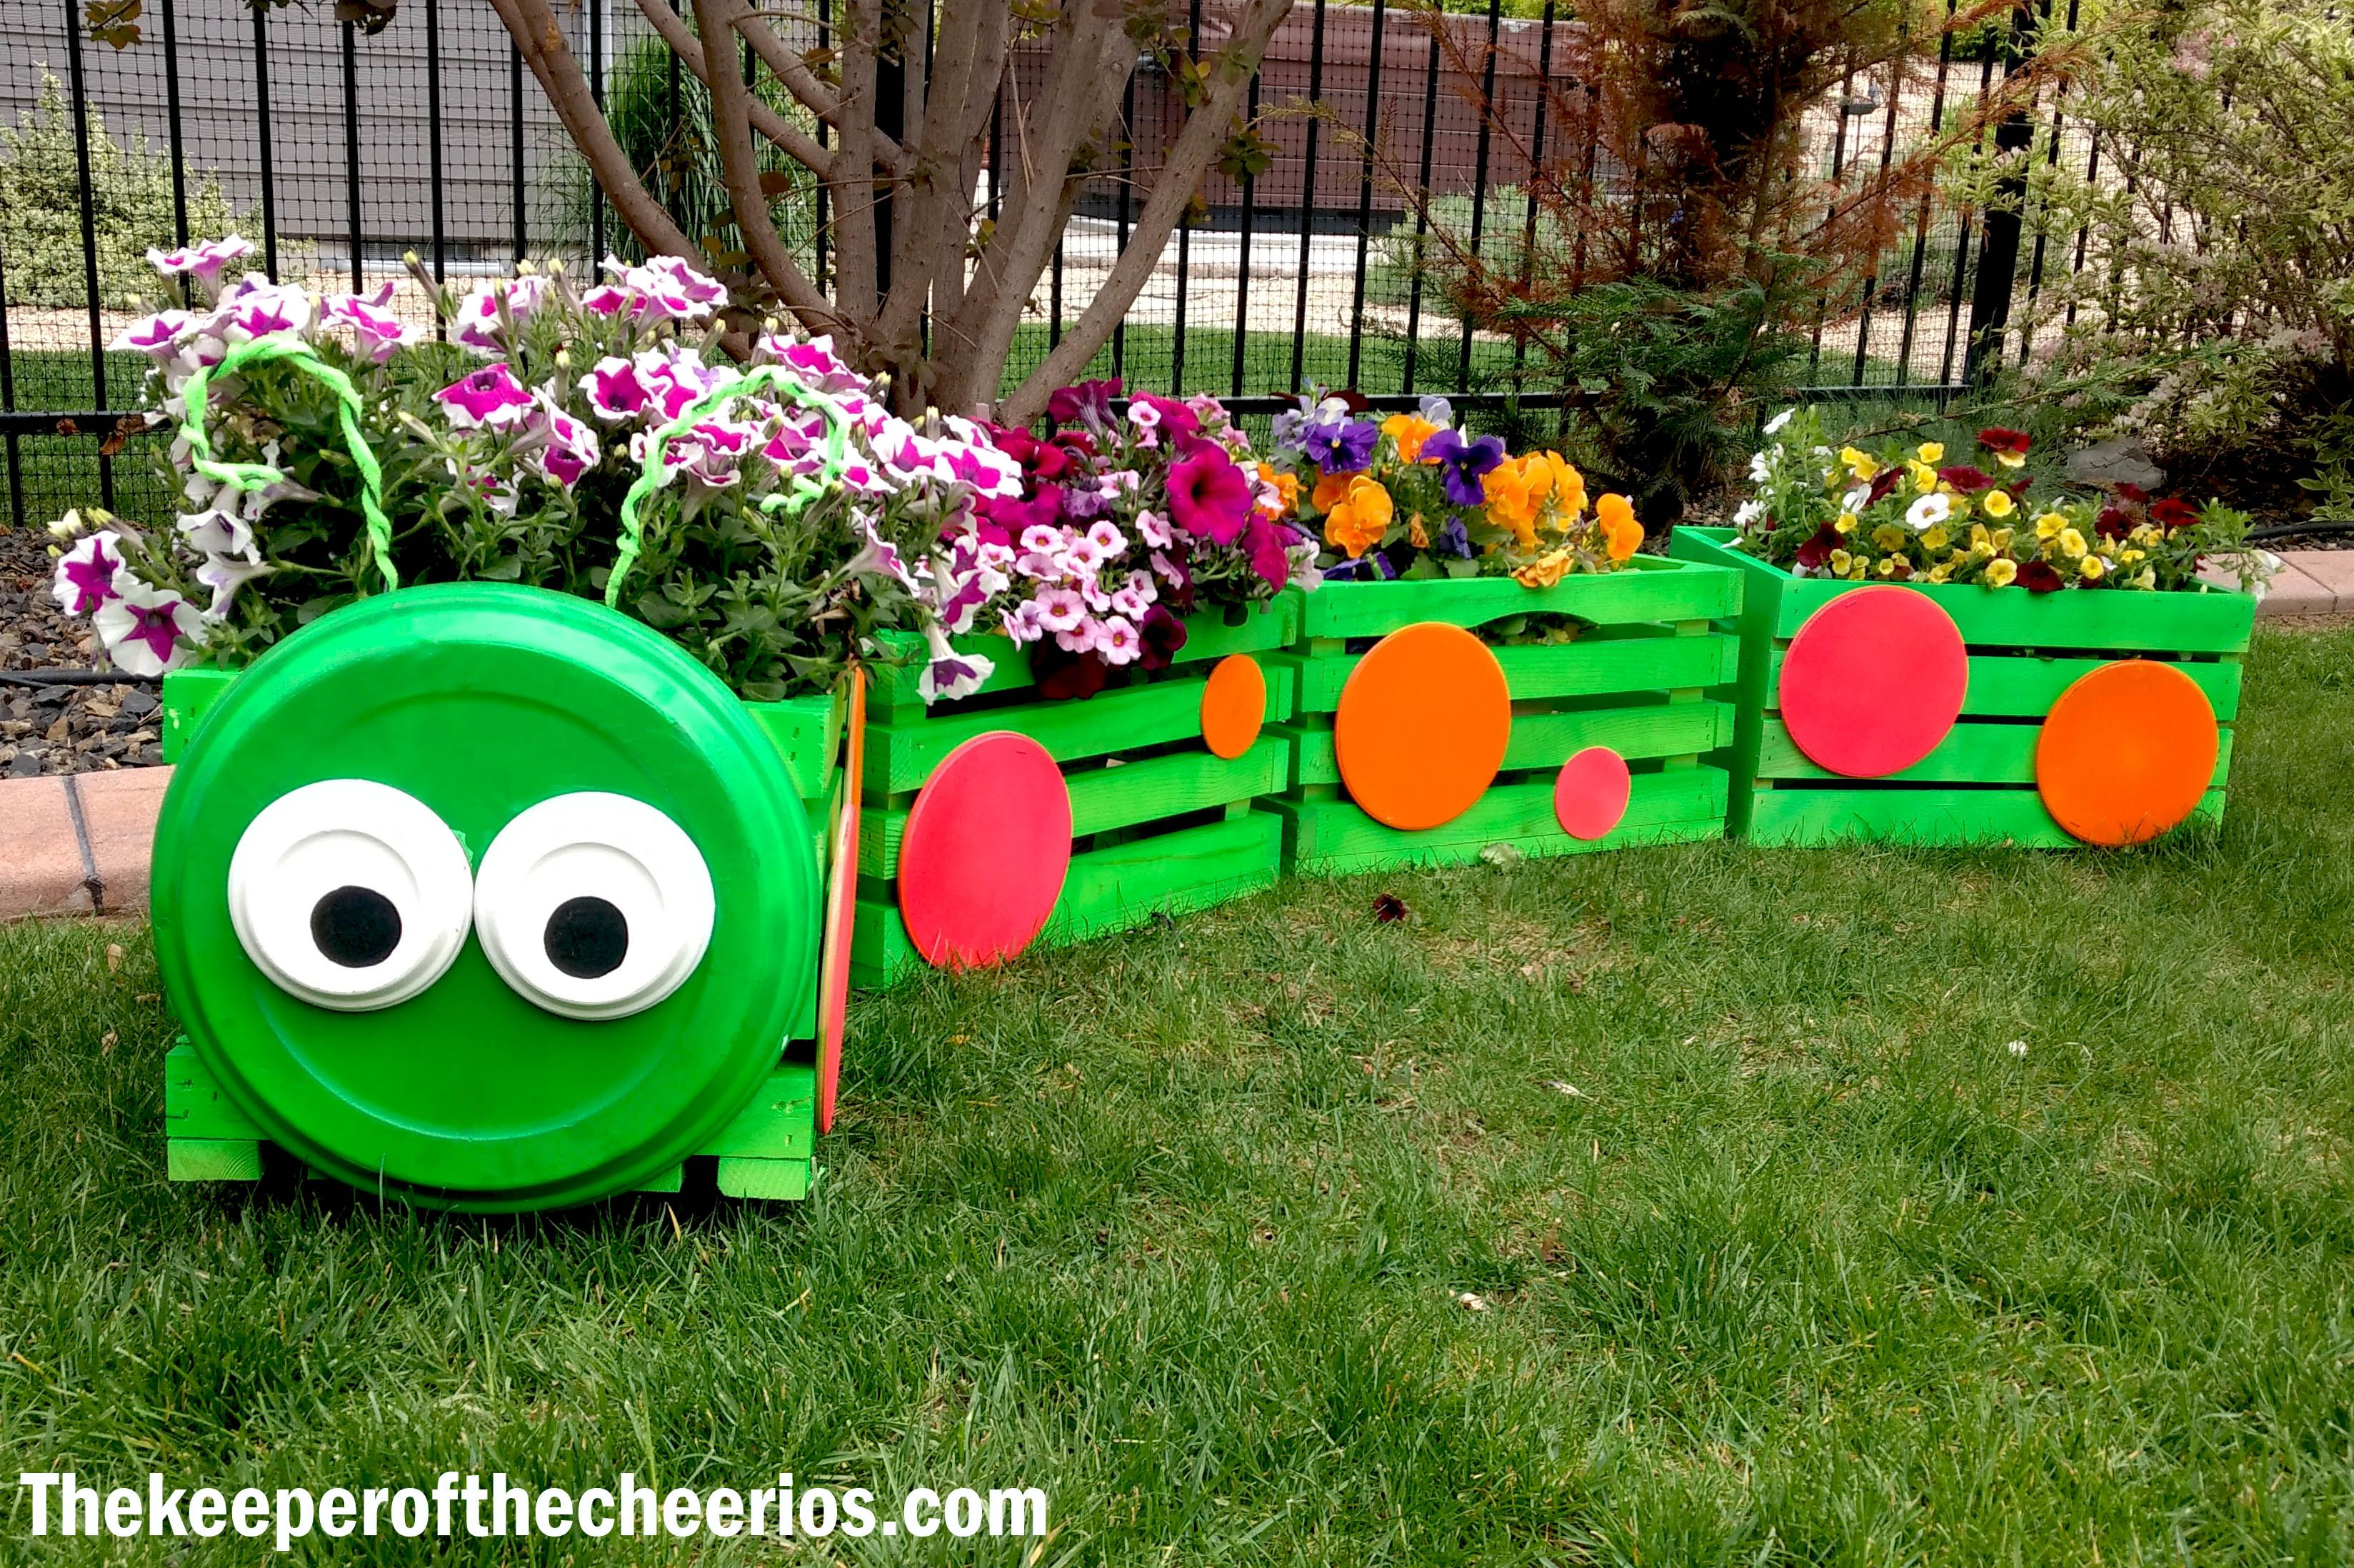 Caterpillar Crate Planter Wooden Crates Planters Planter Pots Outdoor Crates